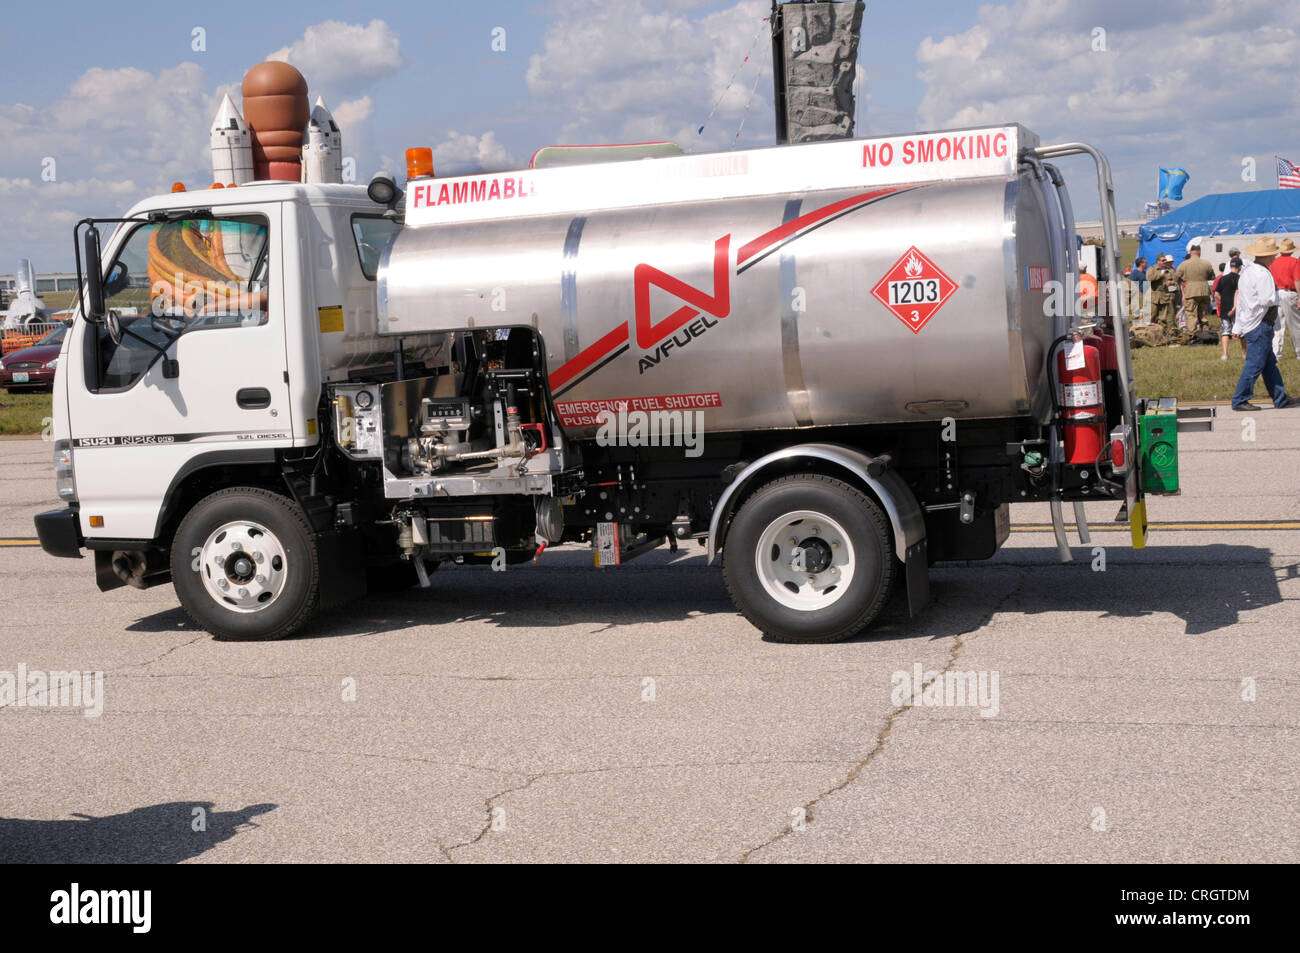 Jet A Fuel Filter Truck Wiring Library Aviation Filters At An Airfield In Michigan Stock Image